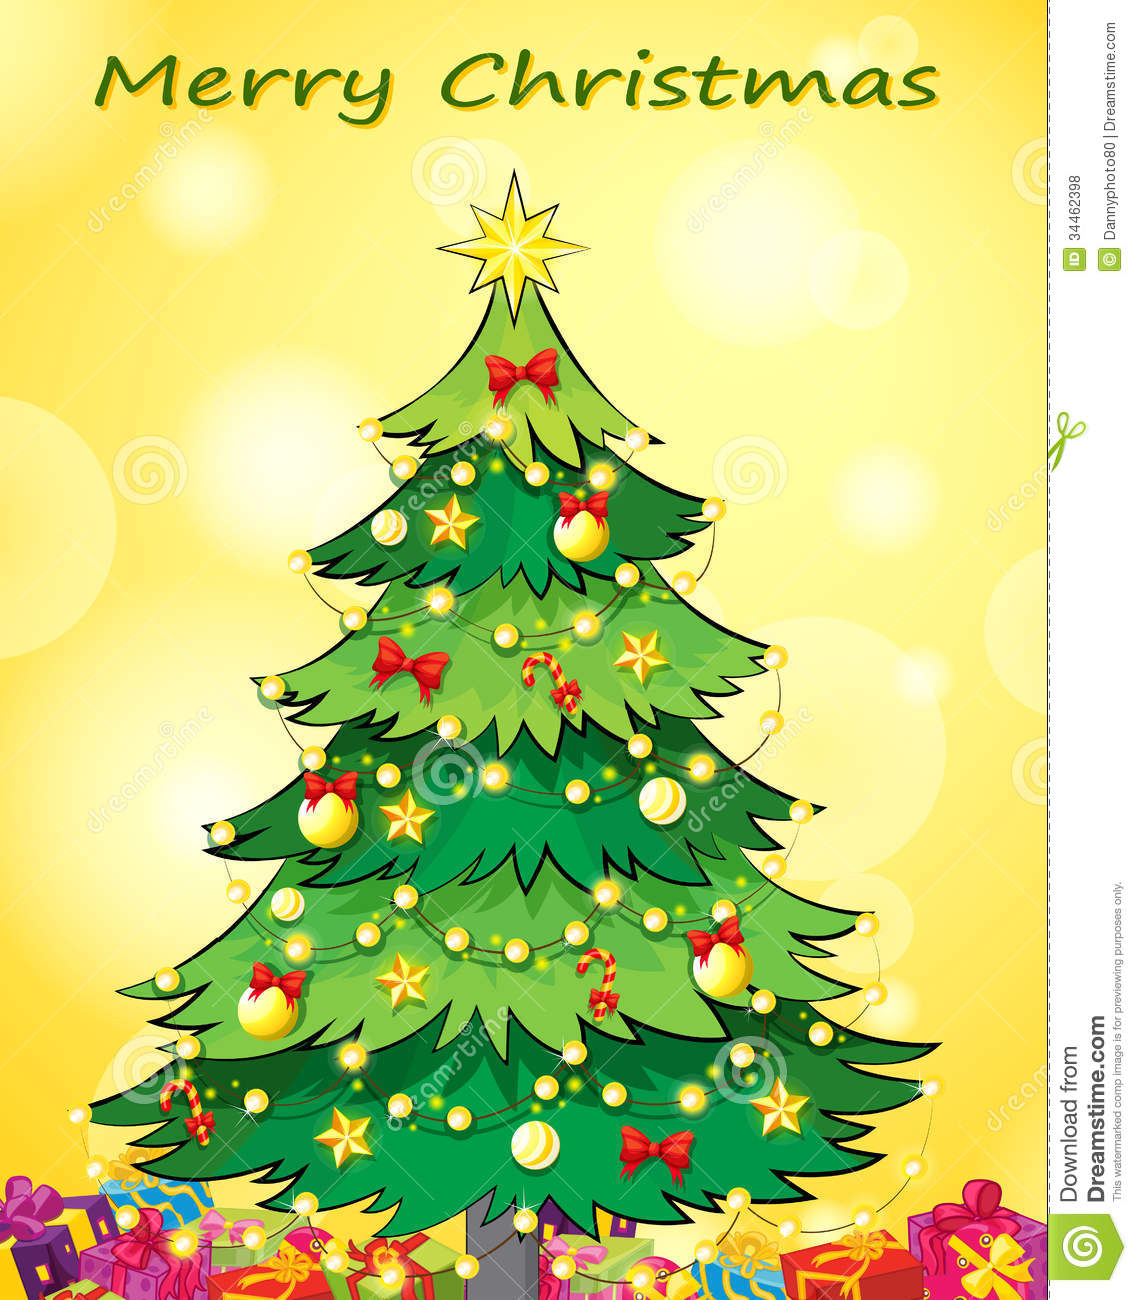 royalty free stock photo download a christmas card - Christmas Tree Card